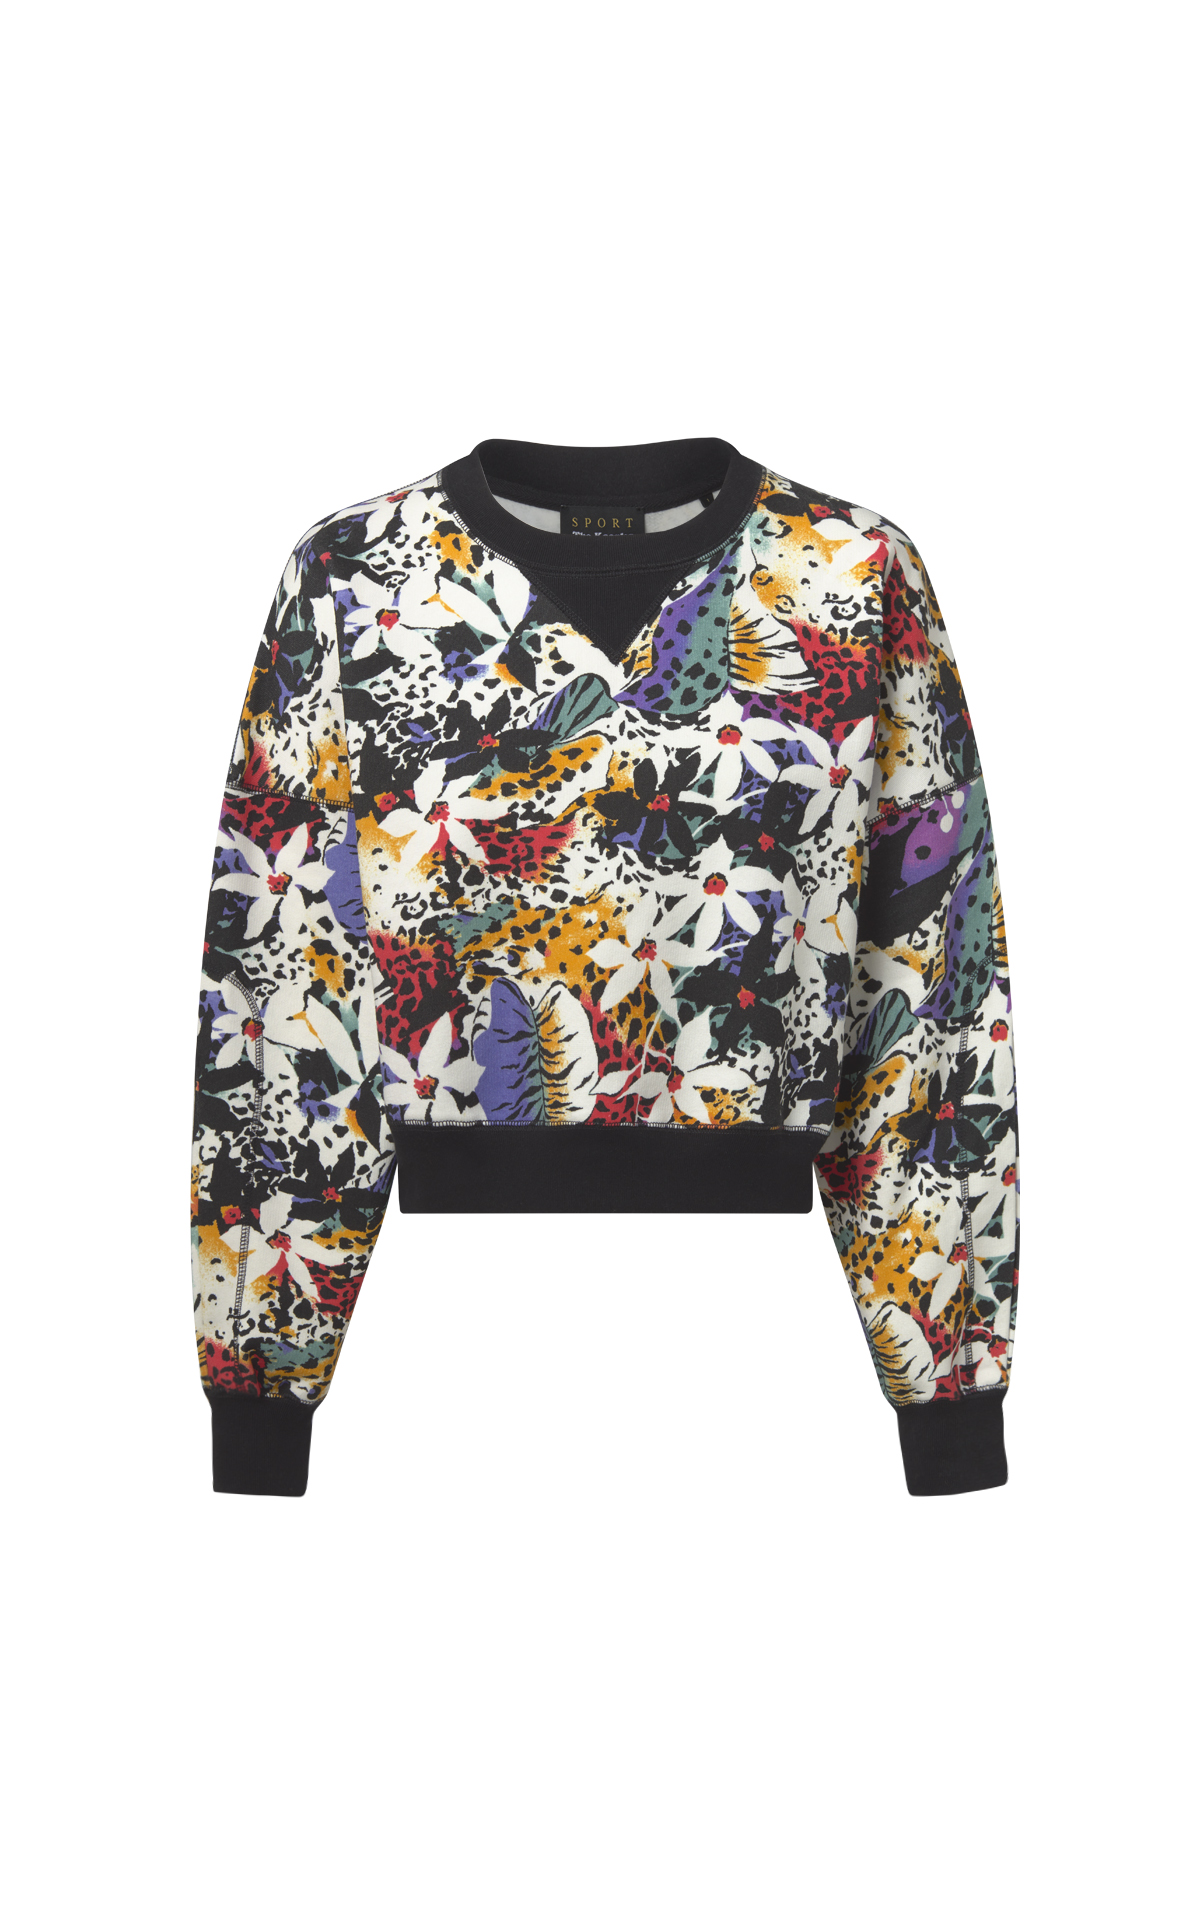 Colorful sweatshirt woman The Kooples